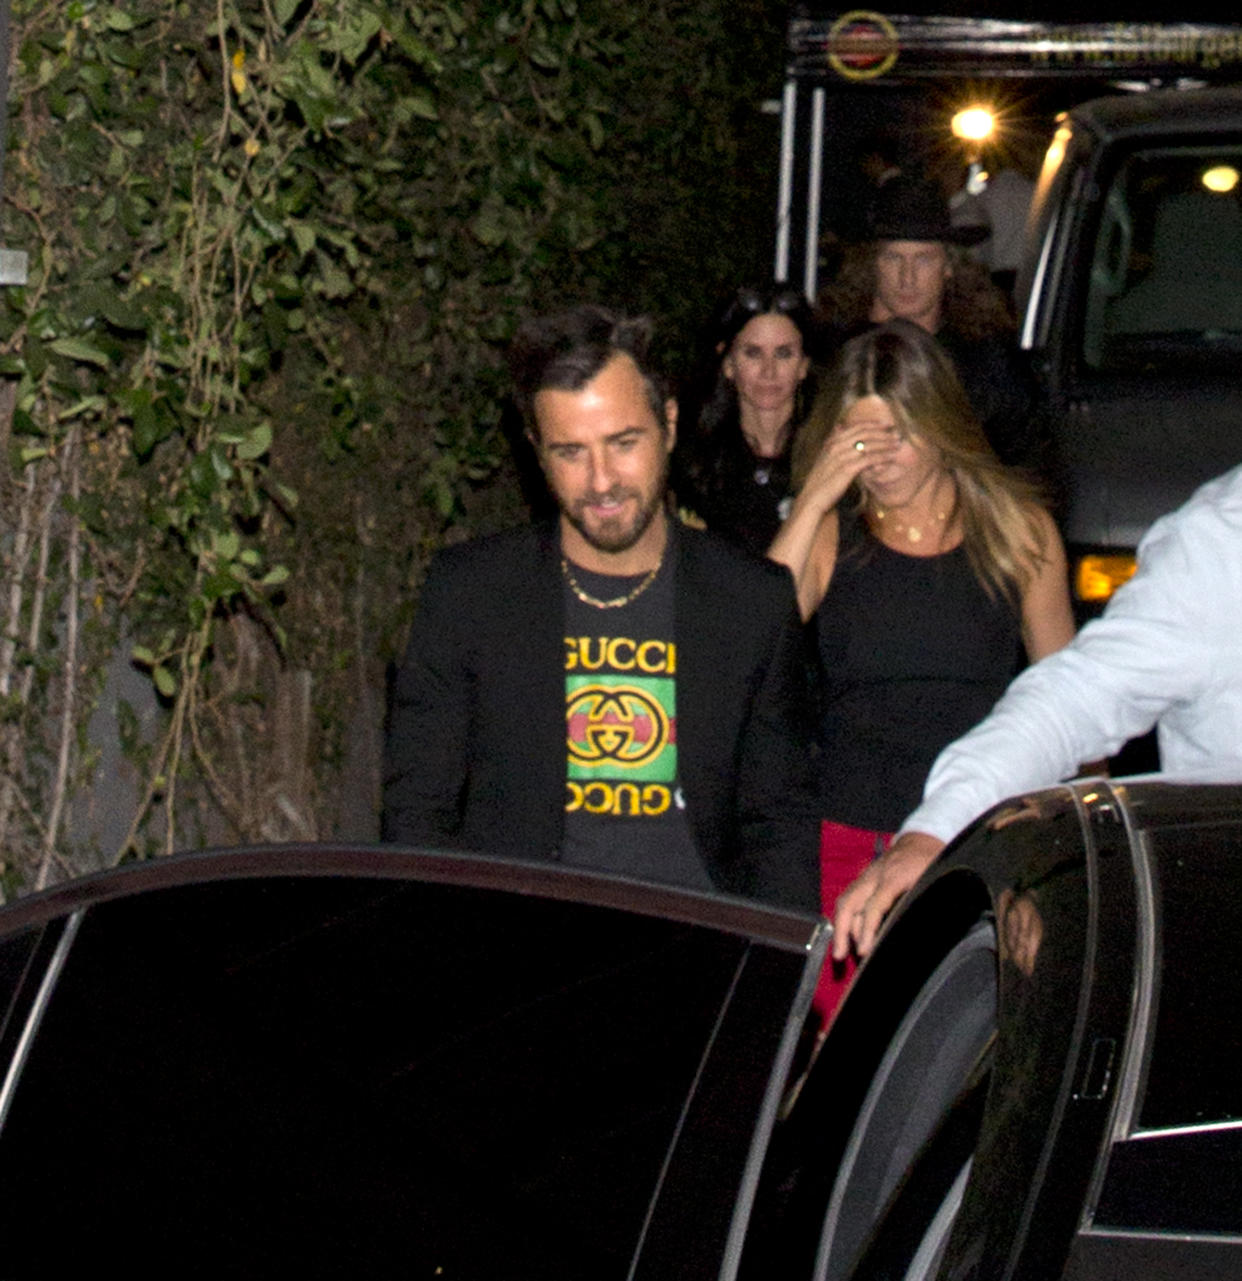 A-List Hollywood actors Jennifer Aniston, Justin Theroux and Courteney Cox were seen leaving from the back door of good friend Jennifer Meyers birthday party at 'Peppermint' Night Club in West Hollywood, CA<P>Pictured: Jennifer Aniston, Justin Theroux, Courteney Cox<B>Ref: SPL1483393  230417  </B><BR/>Picture by: SPW / Splash News<BR/></P><P><B>Splash News and Pictures</B><BR/>Los Angeles:310-821-2666<BR/>New York:212-619-2666<BR/>London:870-934-2666<BR/>photodesk@splashnews.com<BR/></P>